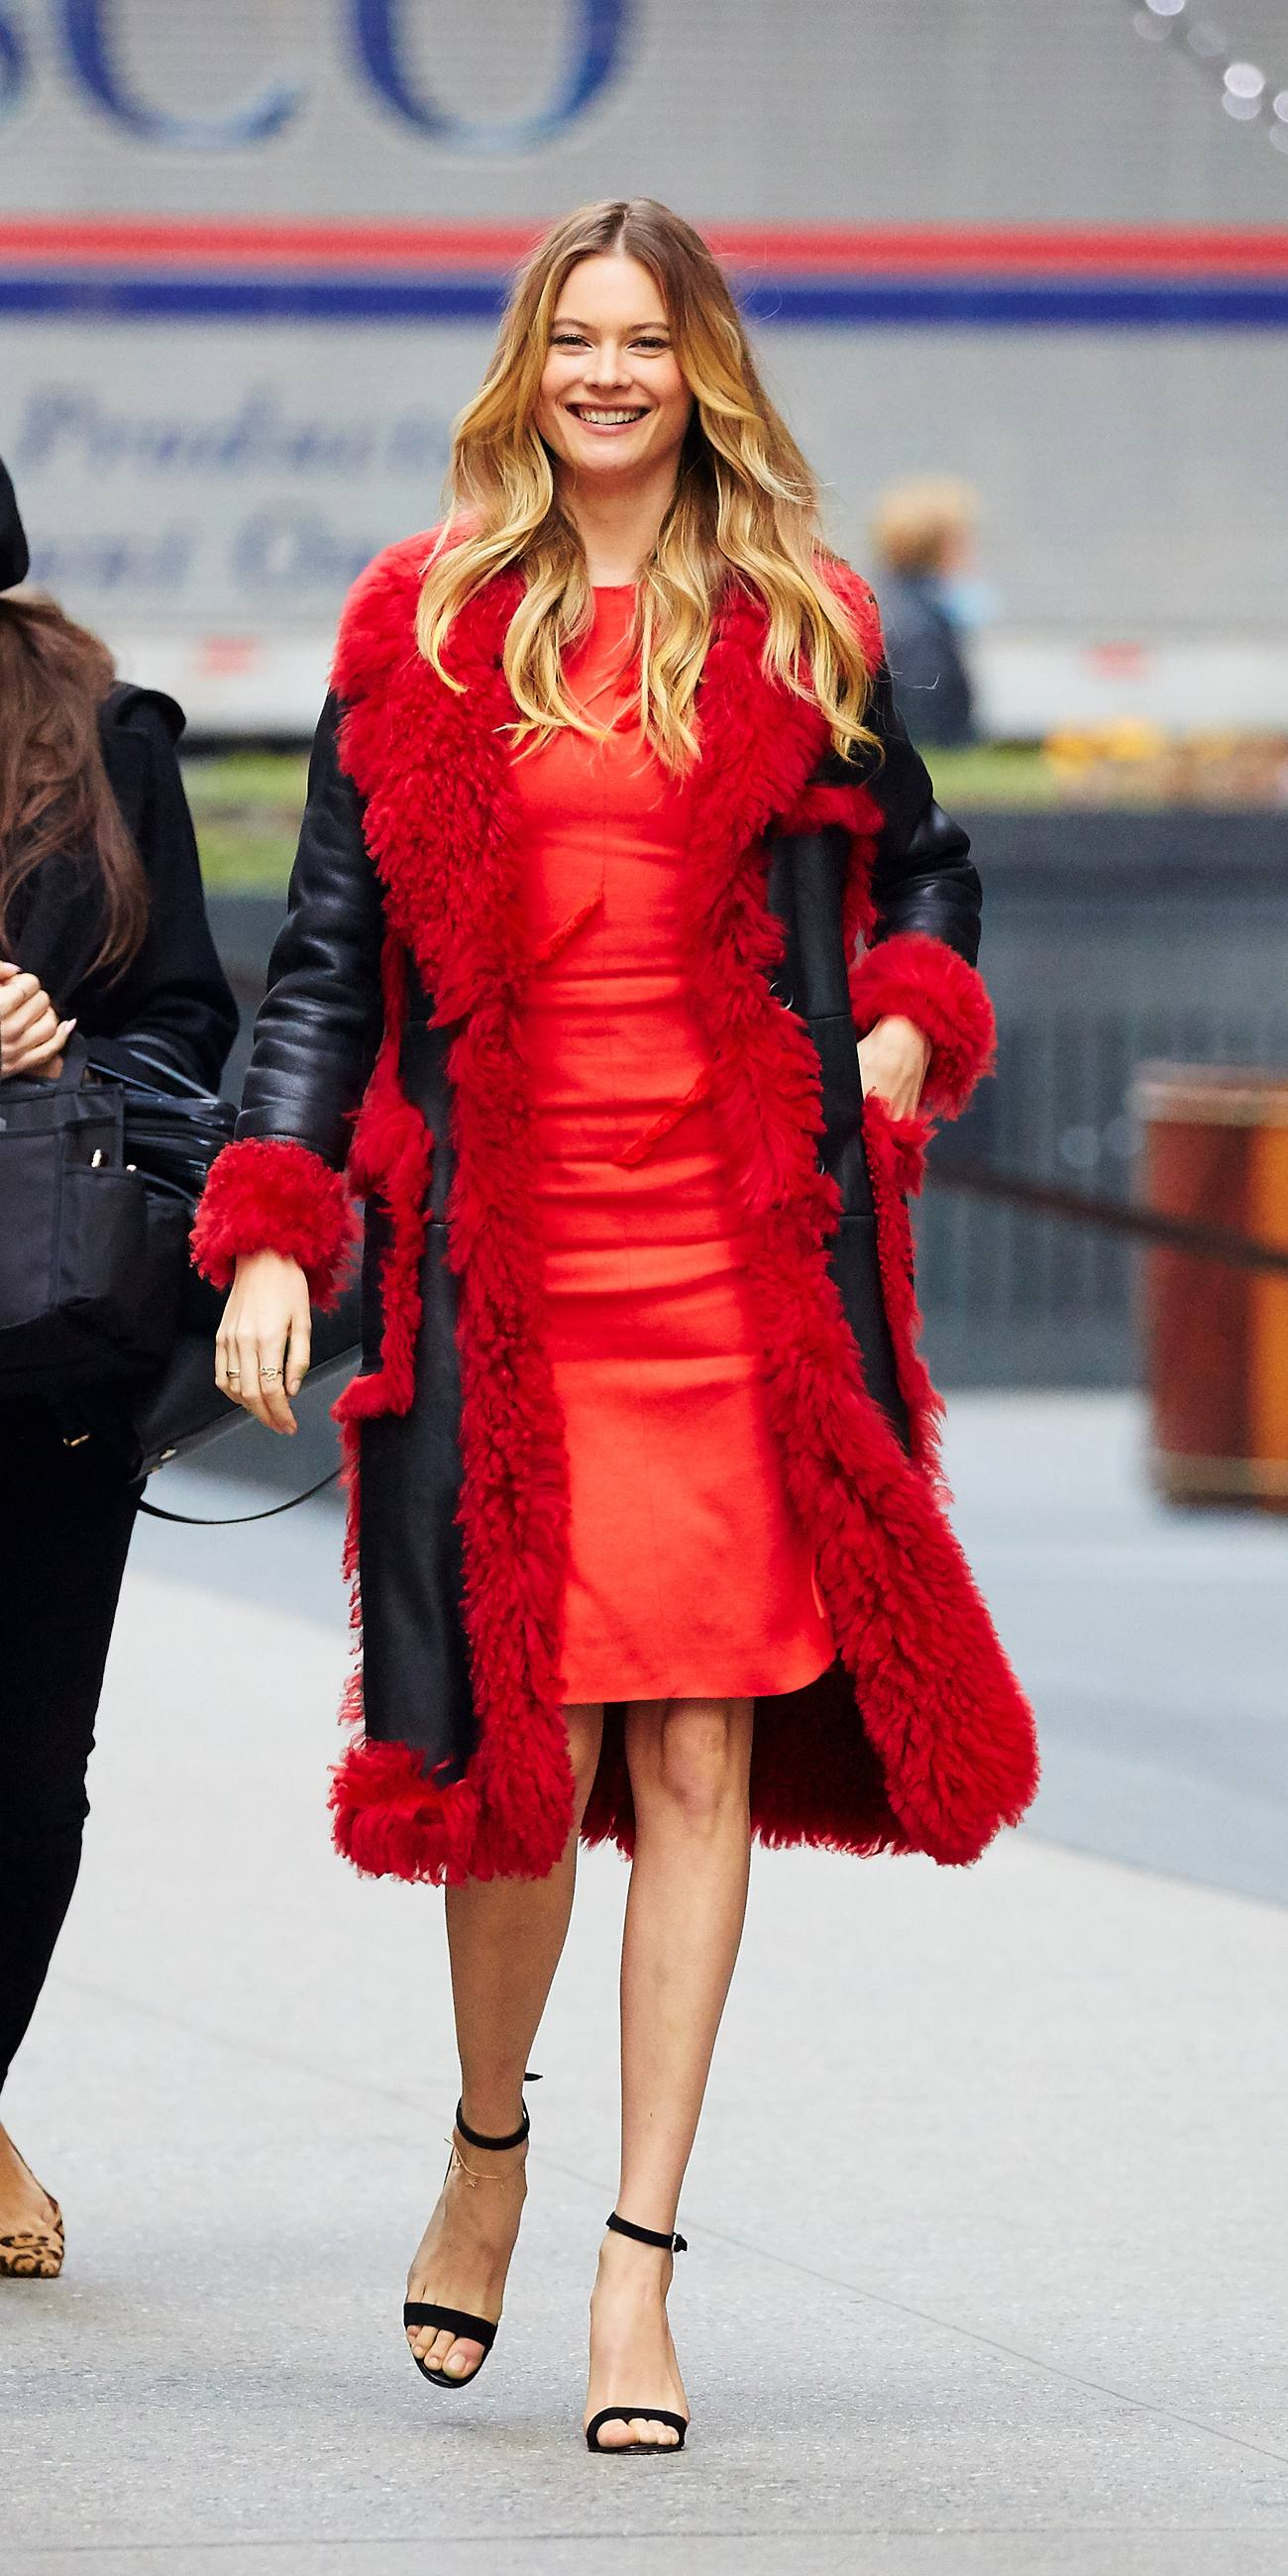 Behati Prinsloo Red Beauty in NYC-1